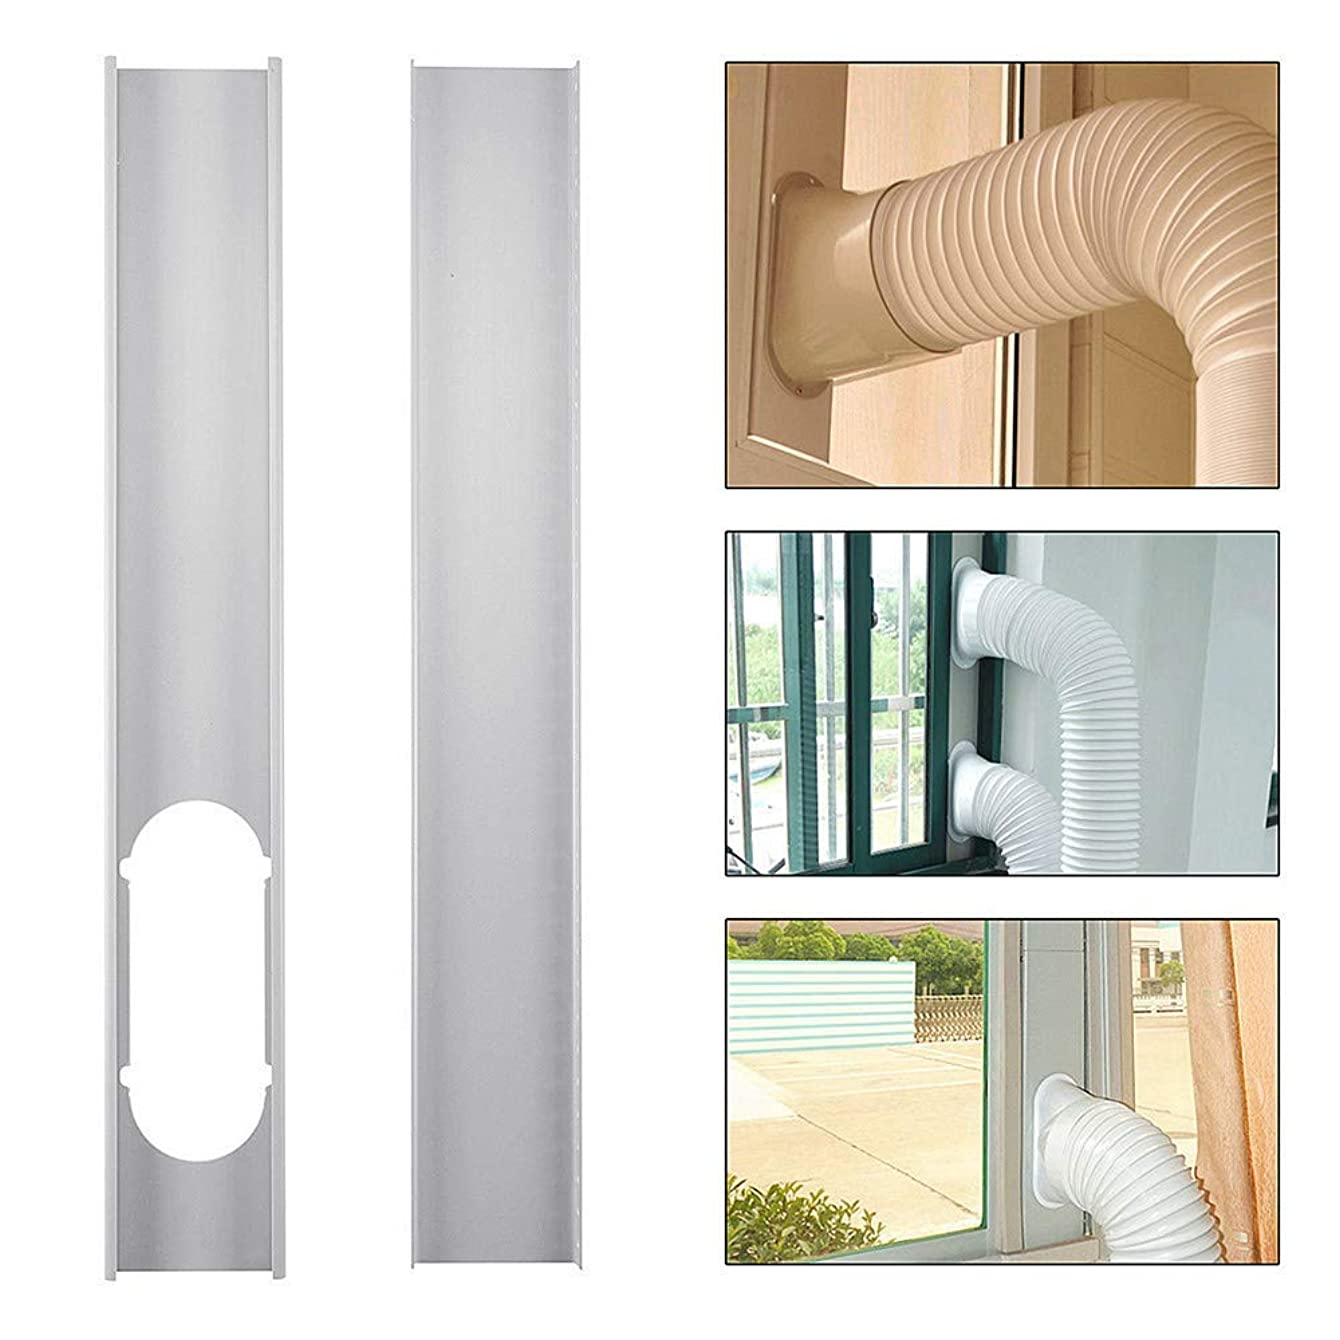 Hi5Ashley Adjustable Window Slide Kit Plate Air Conditioner Wind Shield for Portable Air Conditioner, 2 Pieces